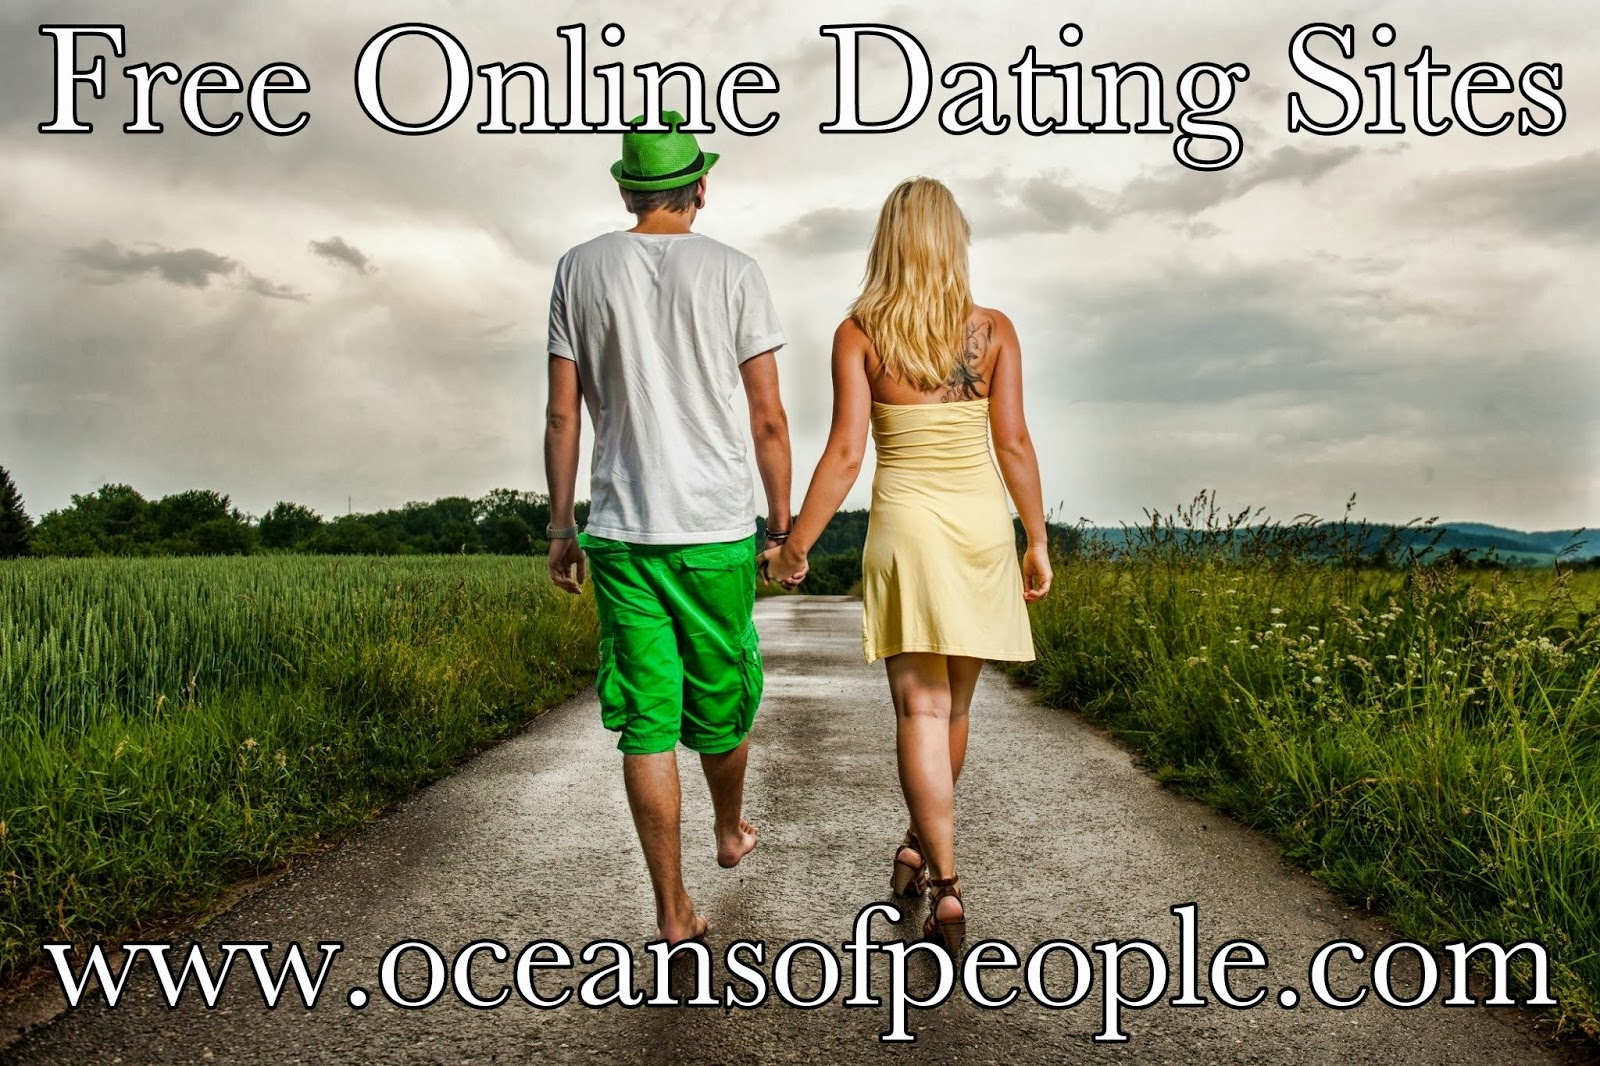 100% free online dating in tunja 100% free dating site for singles and couples never pay hundreds of new members join every day sign up and find your date today.